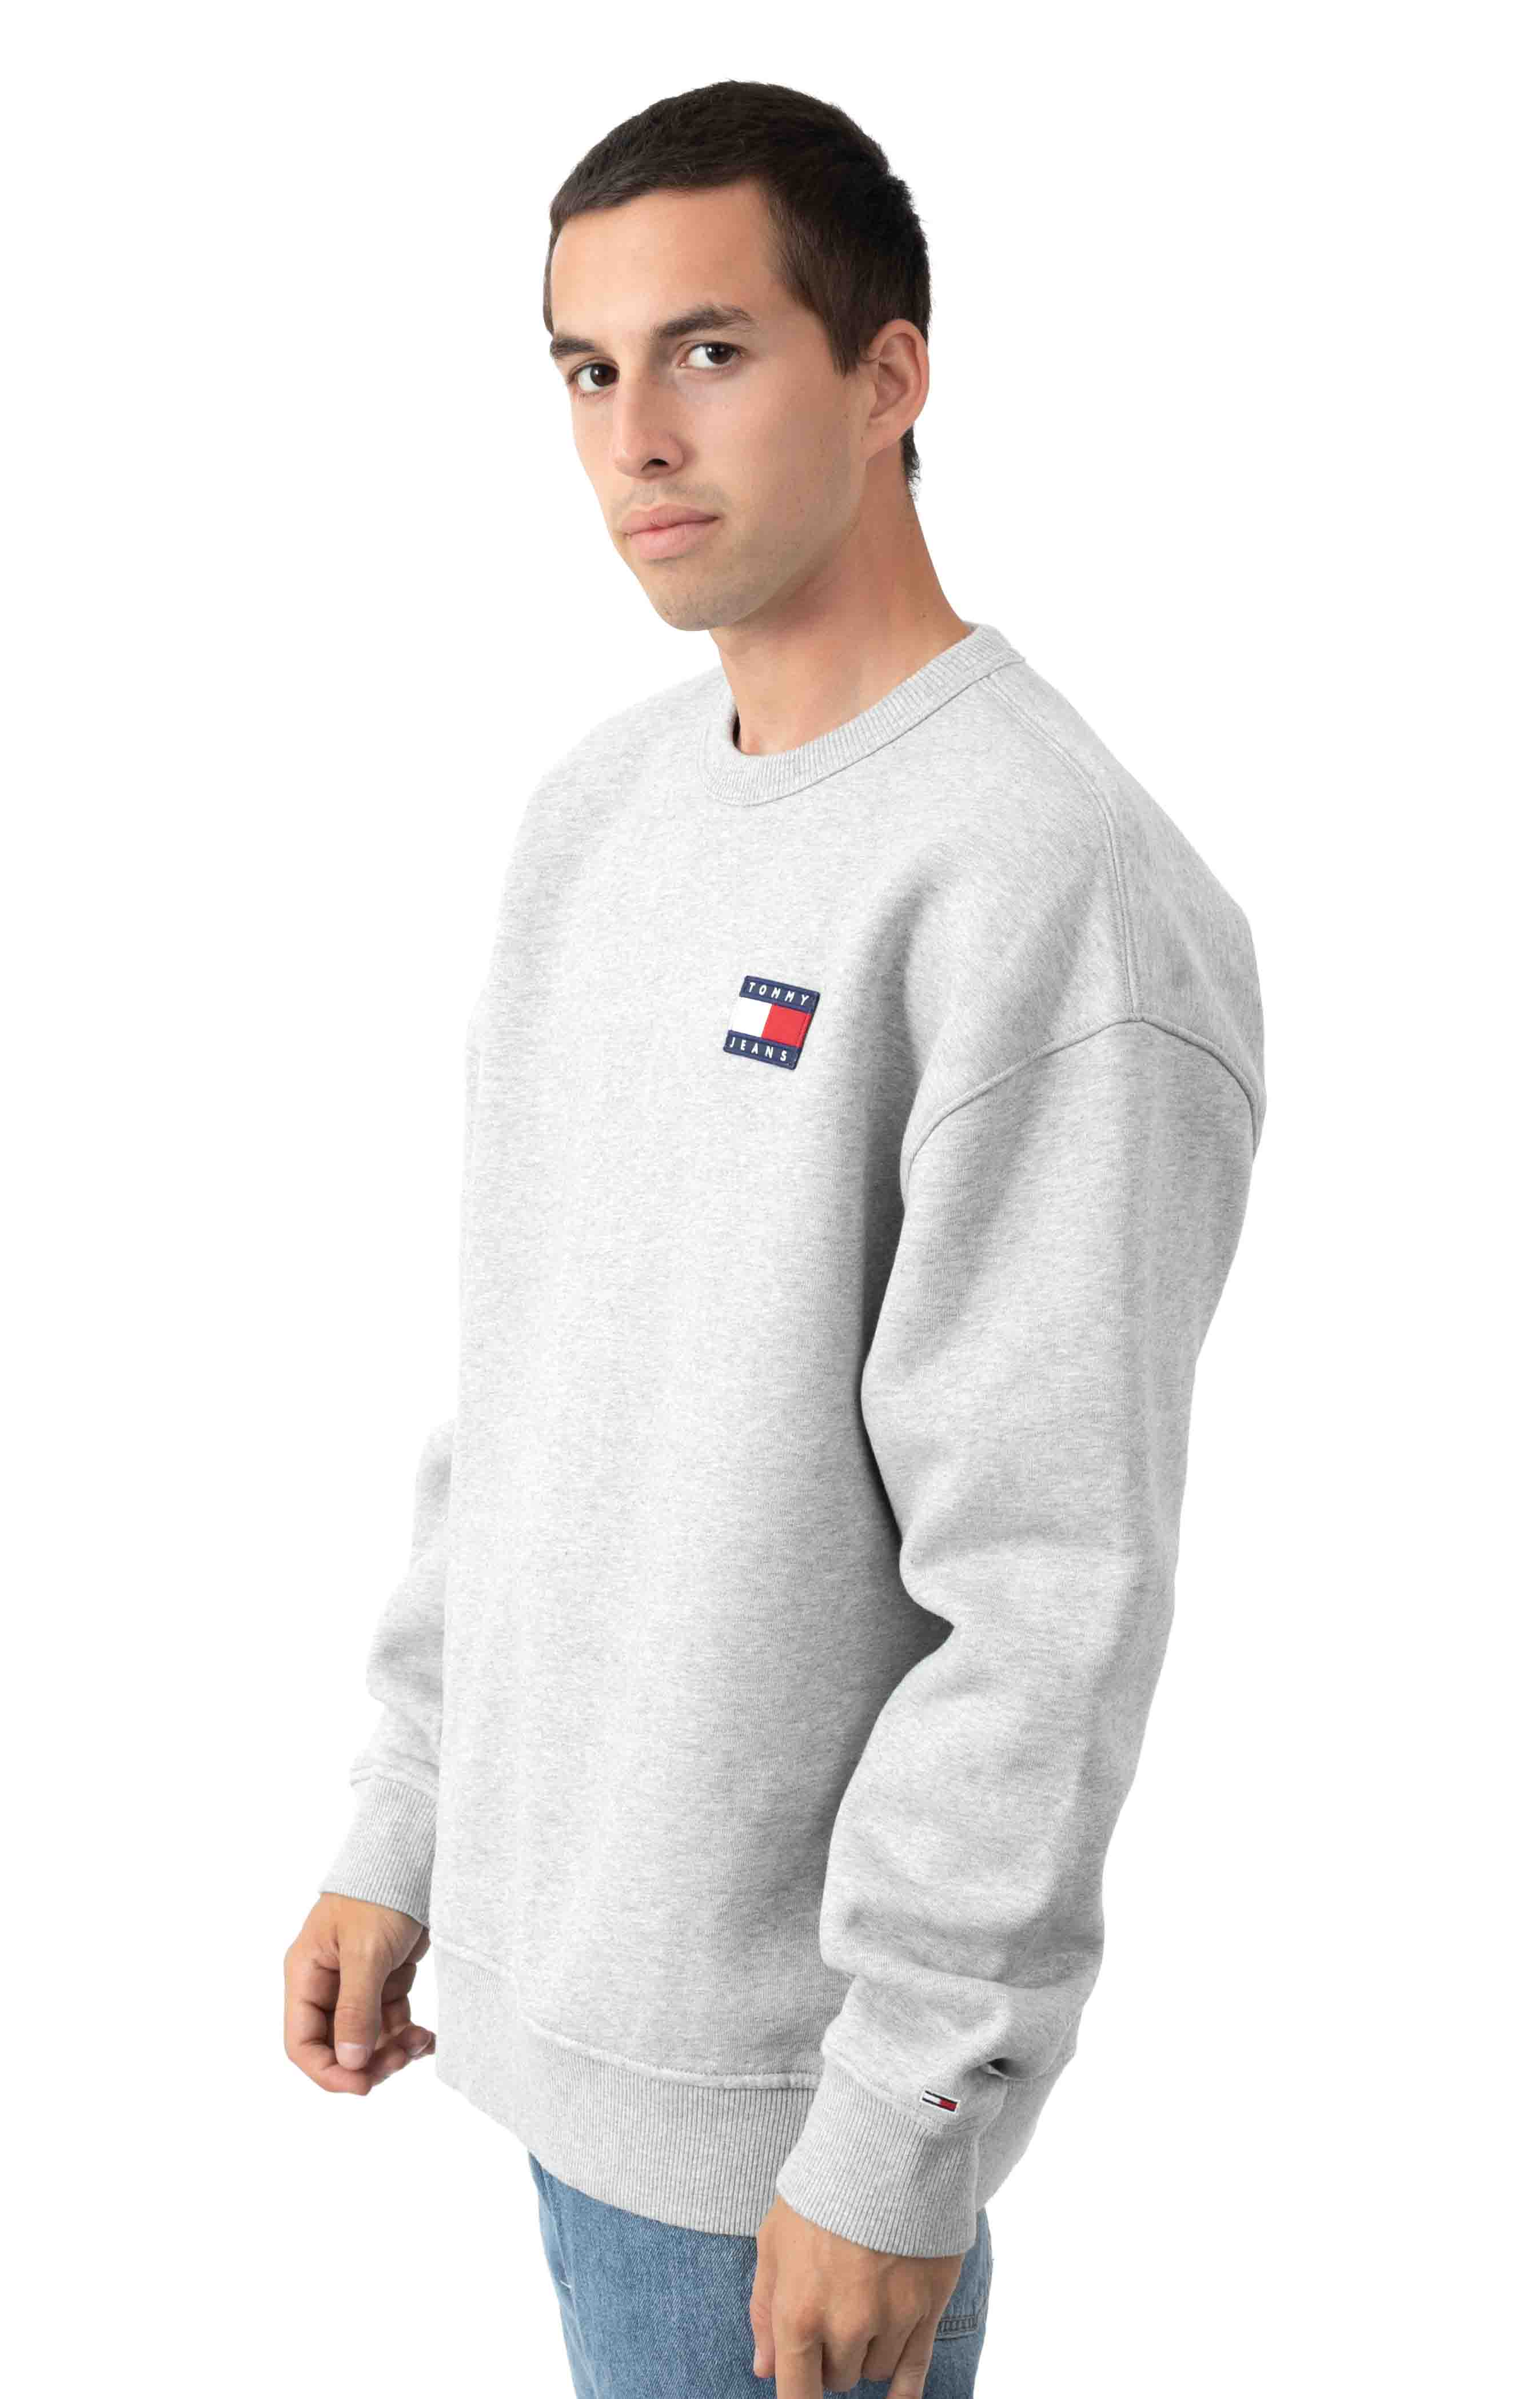 Jai Badge Sweatshirt - Metal Grey 2